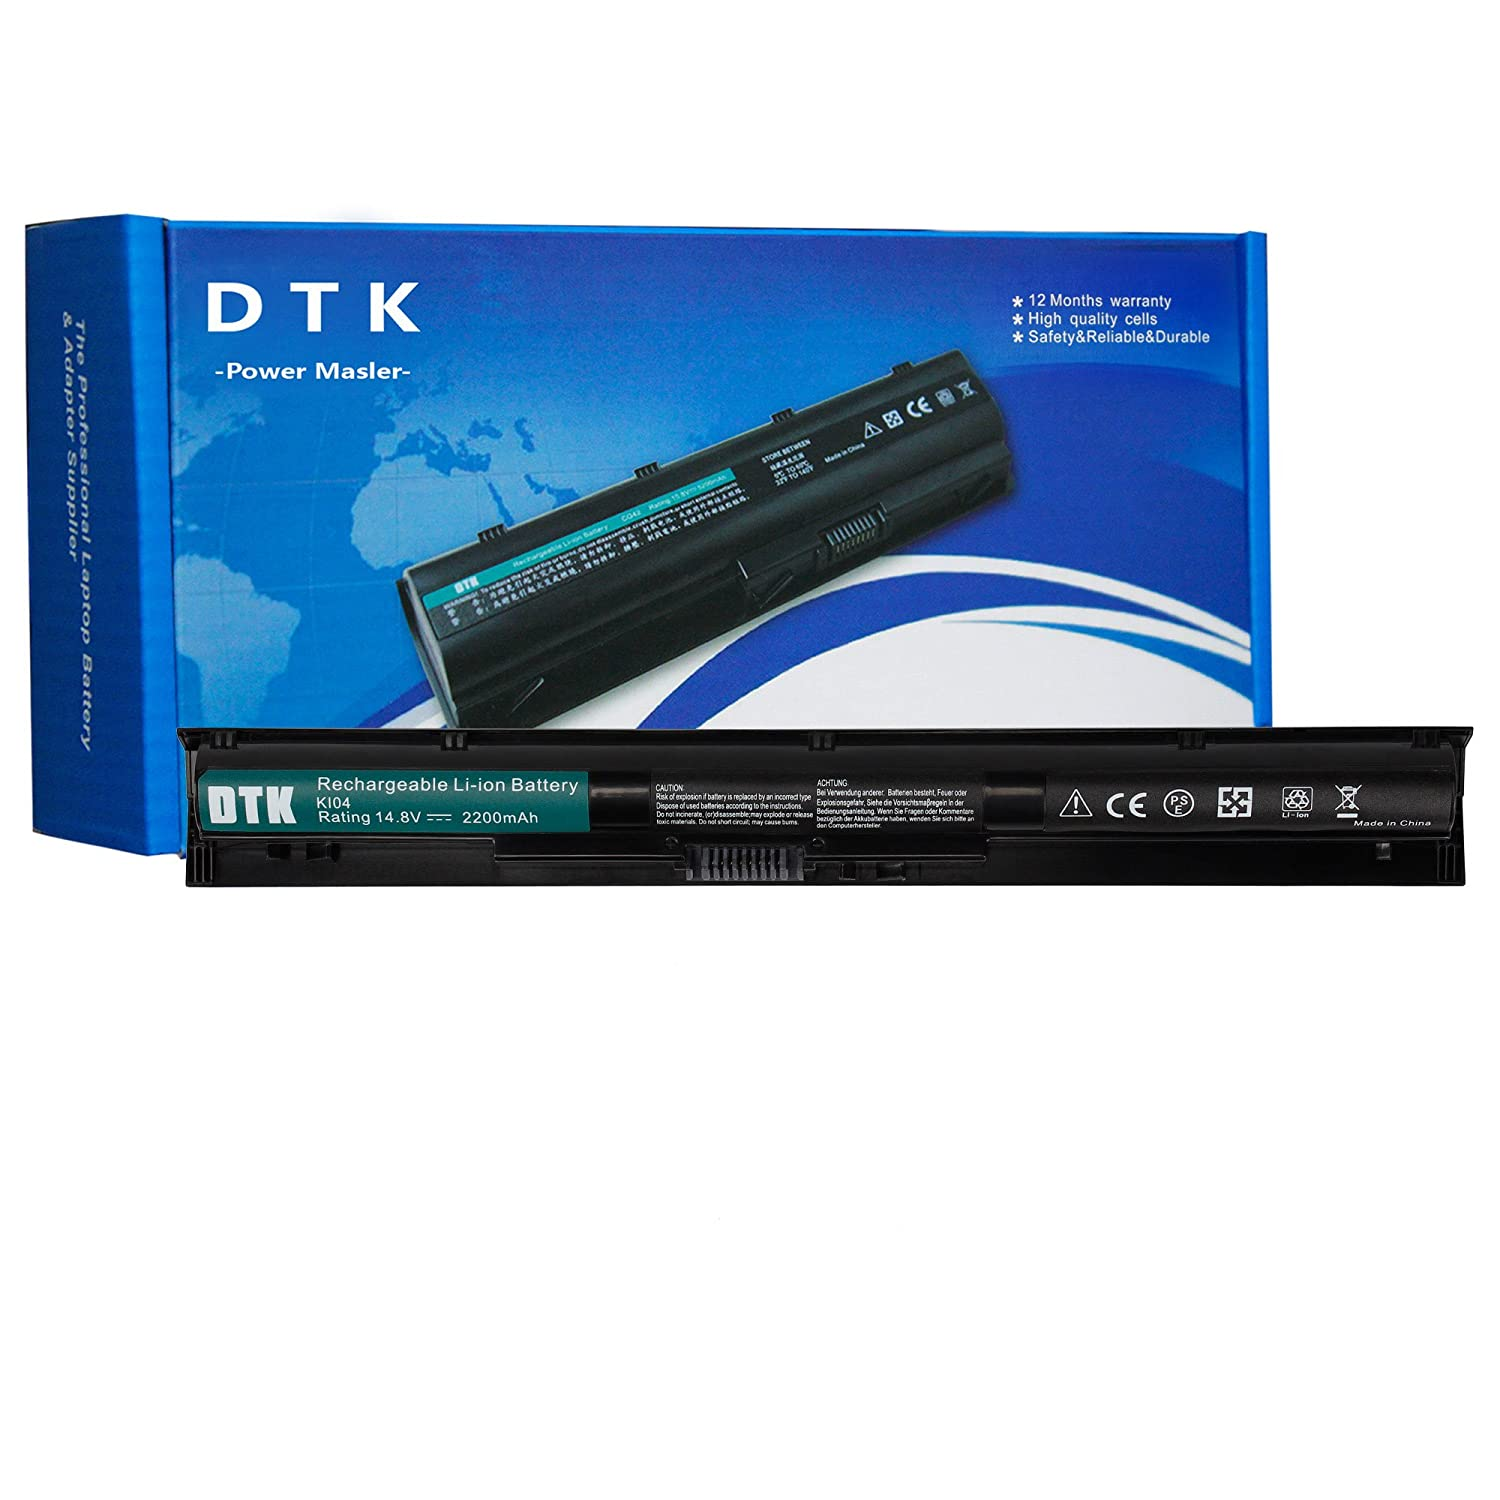 DTK New Laptop Battery Replacement for HP Pavilion 15-ab036TX / Pavilion 14-ab011TX P/N: KI04 [14.8V 2200MAH] DHKI04